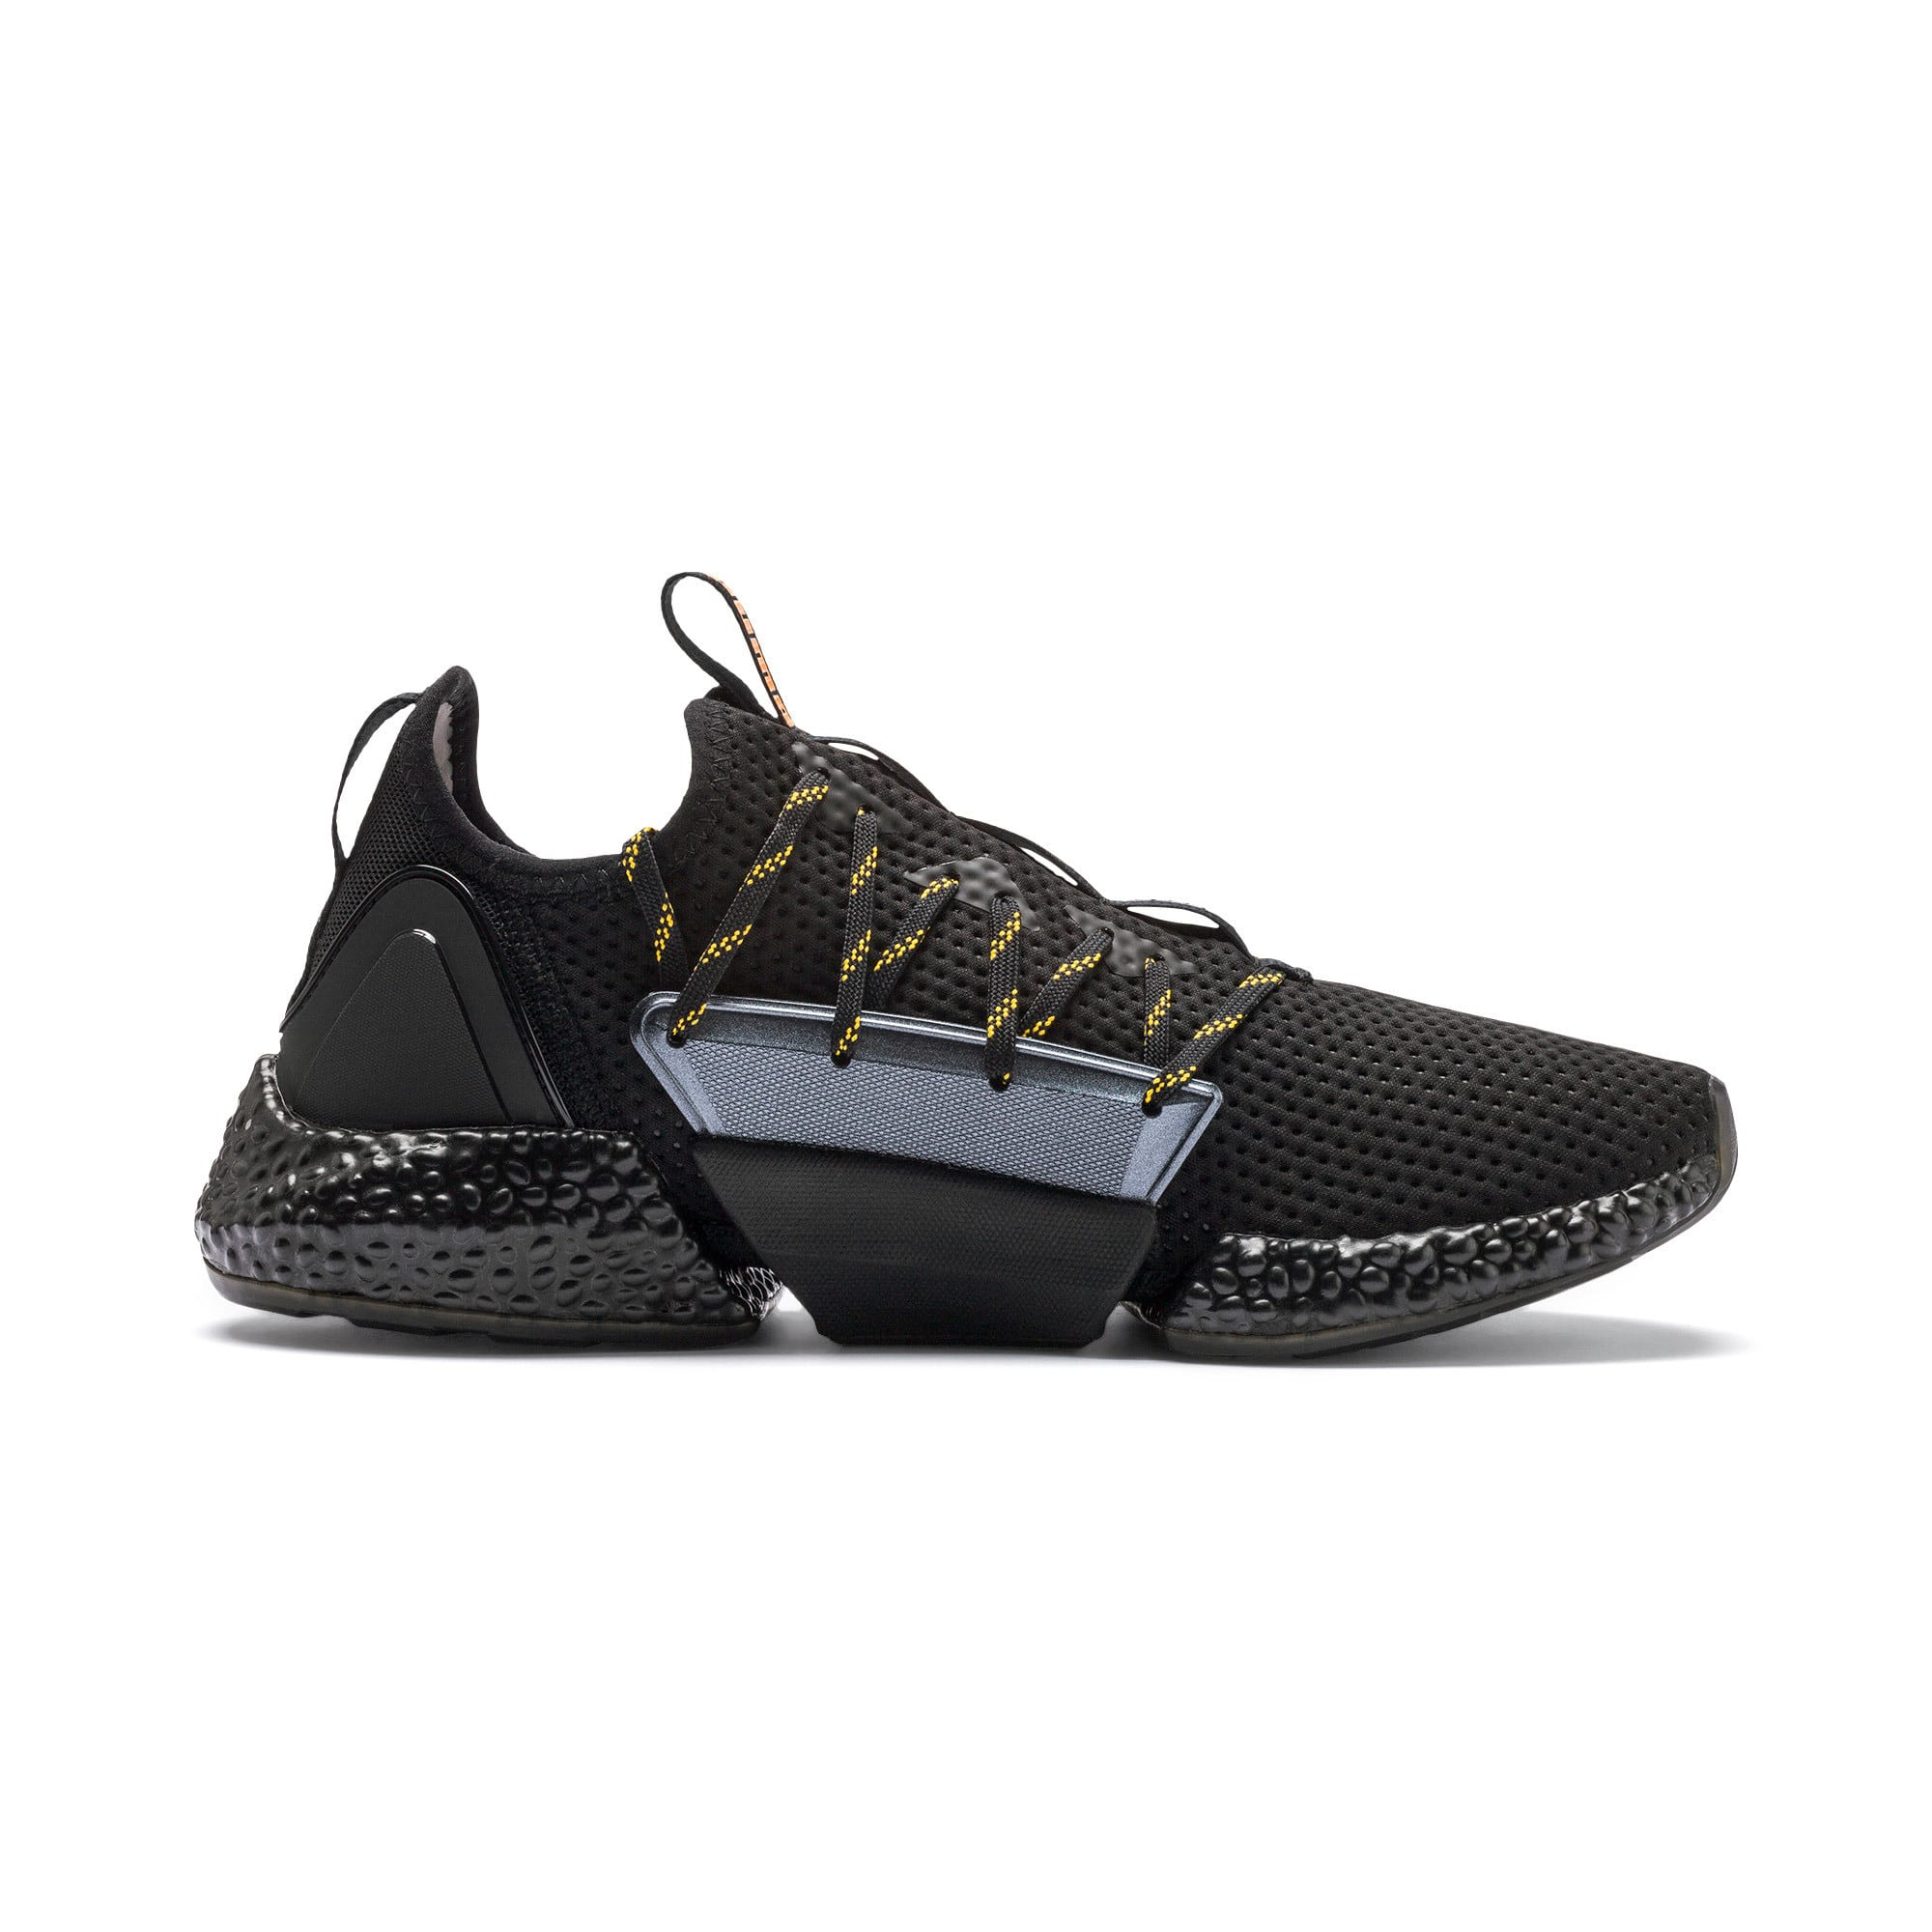 Thumbnail 6 of HYBRID Rocket Aero Men's Sneakers, Puma Black-Puma Black, medium